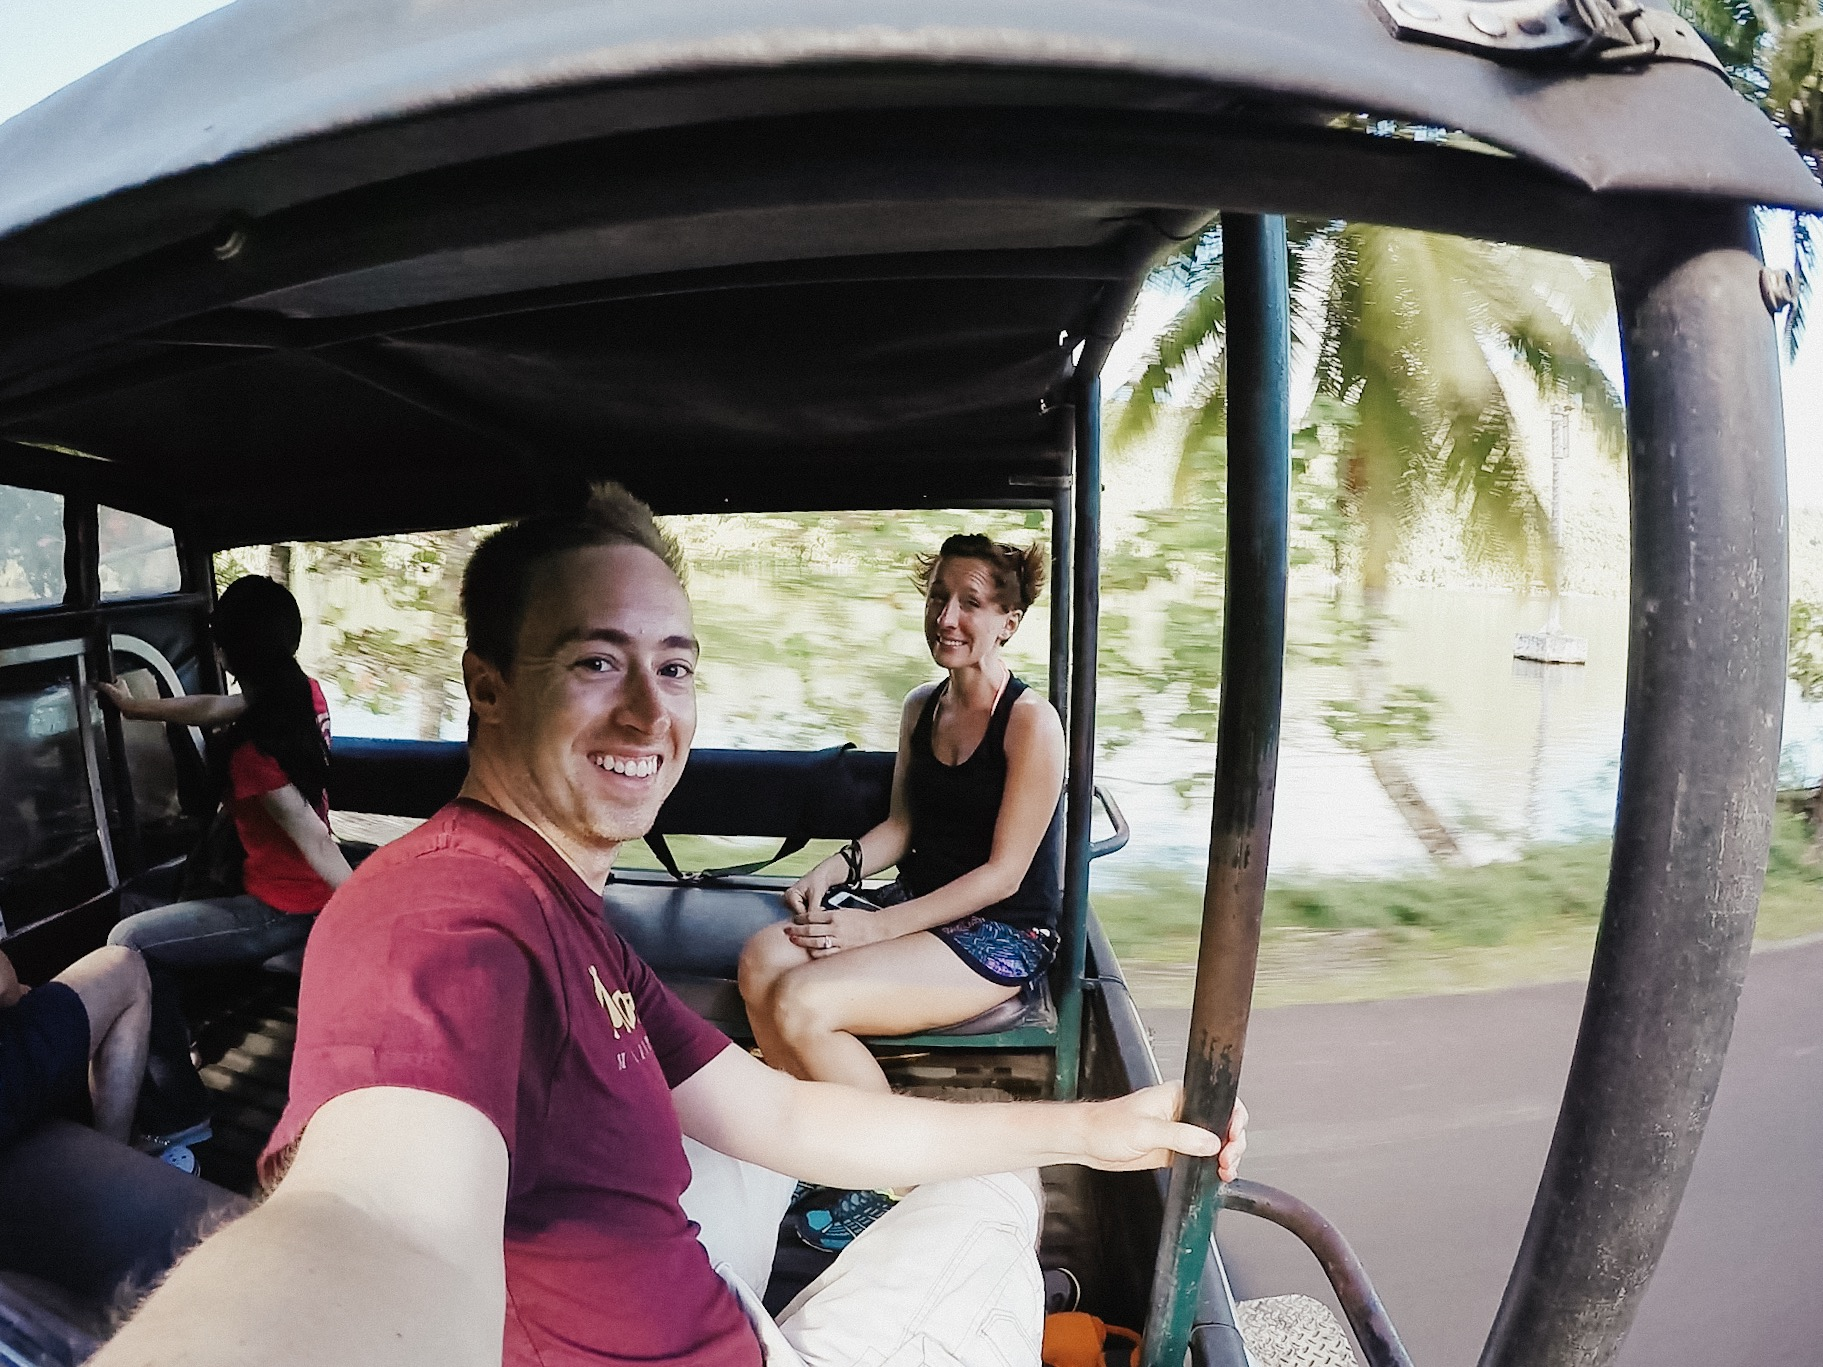 Just starting our tour - zipping down the road to pick up other travelers for the 4wd safari.